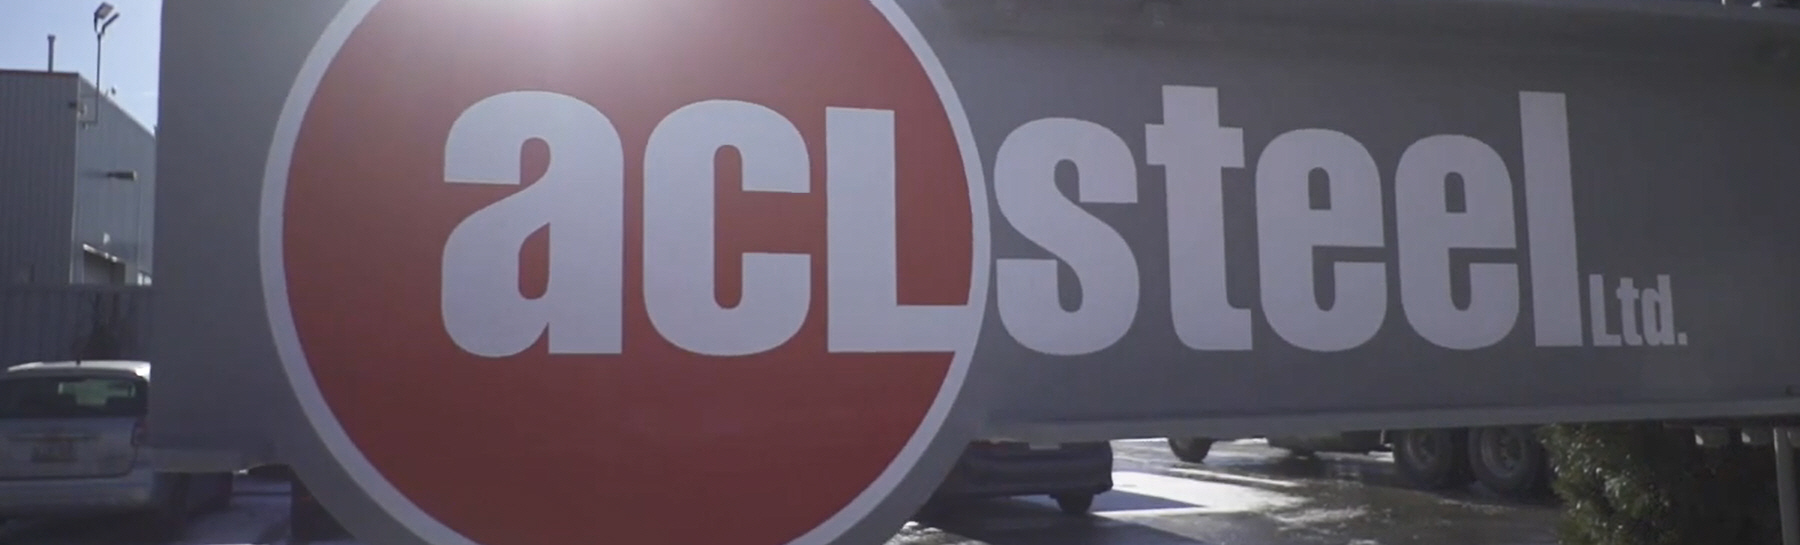 acl steel sign